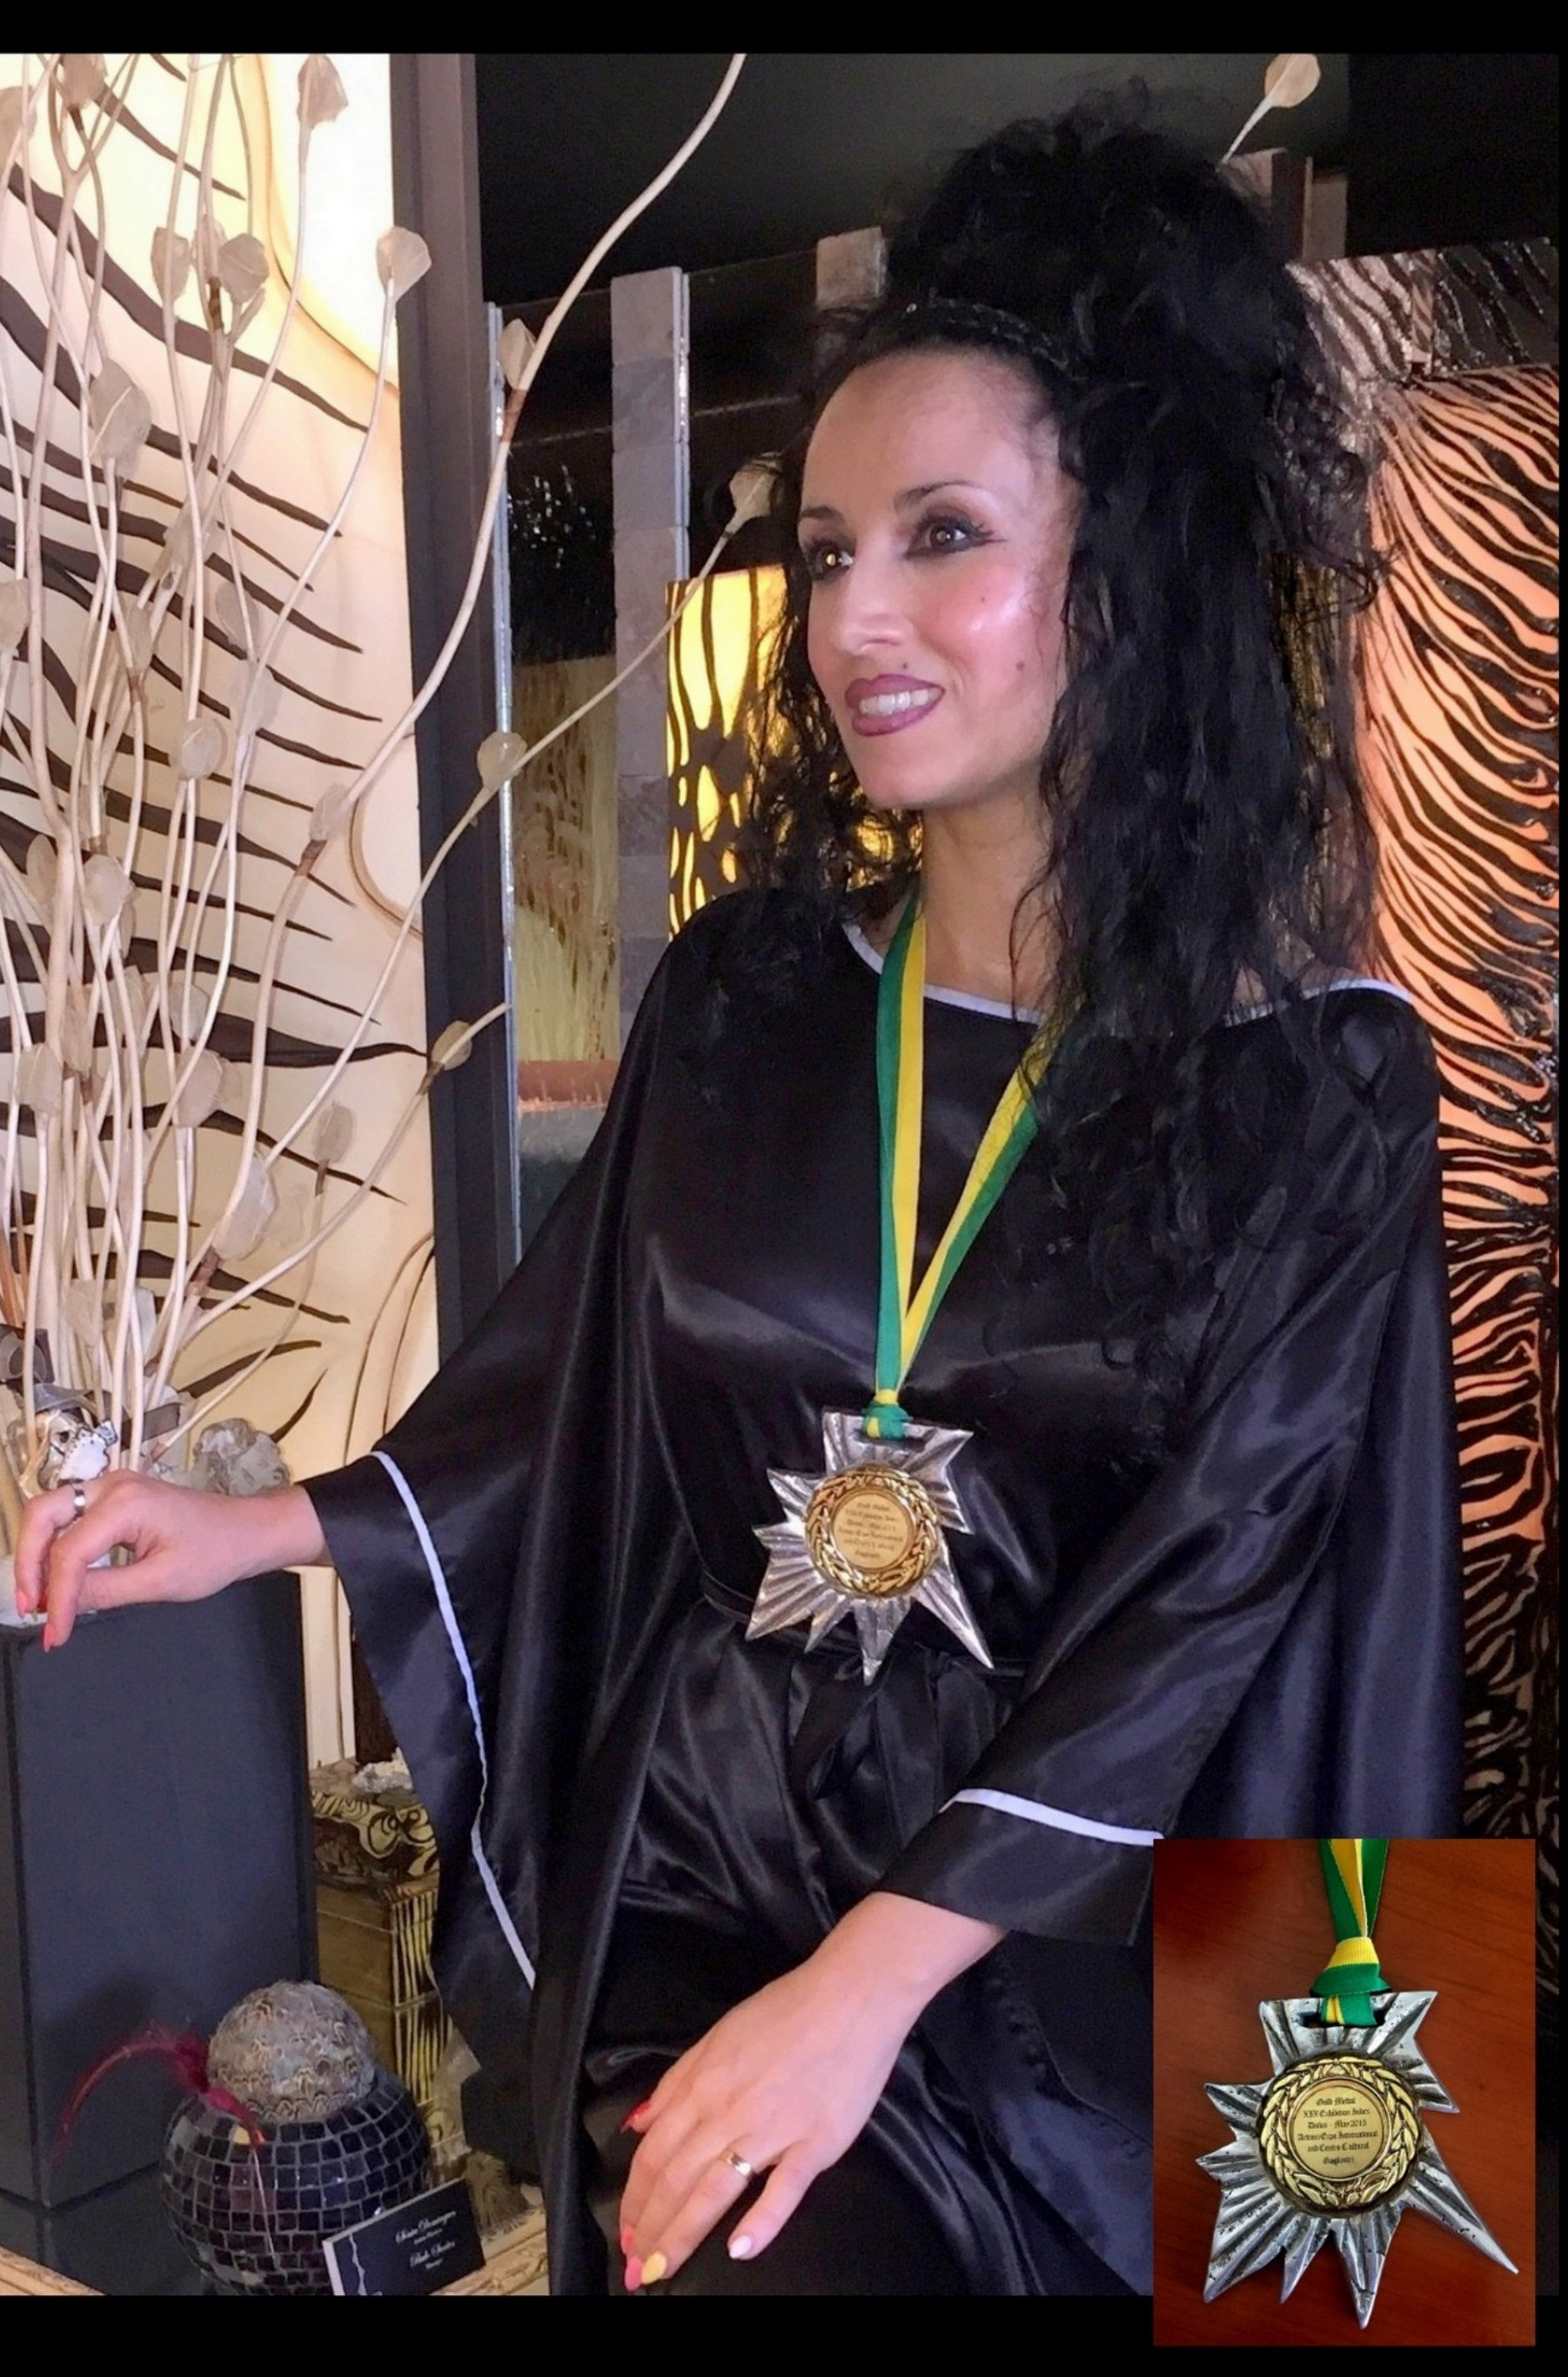 Gold Medal to the Artist Sonia Domingues Dubai World Trade Center 2015 2nd